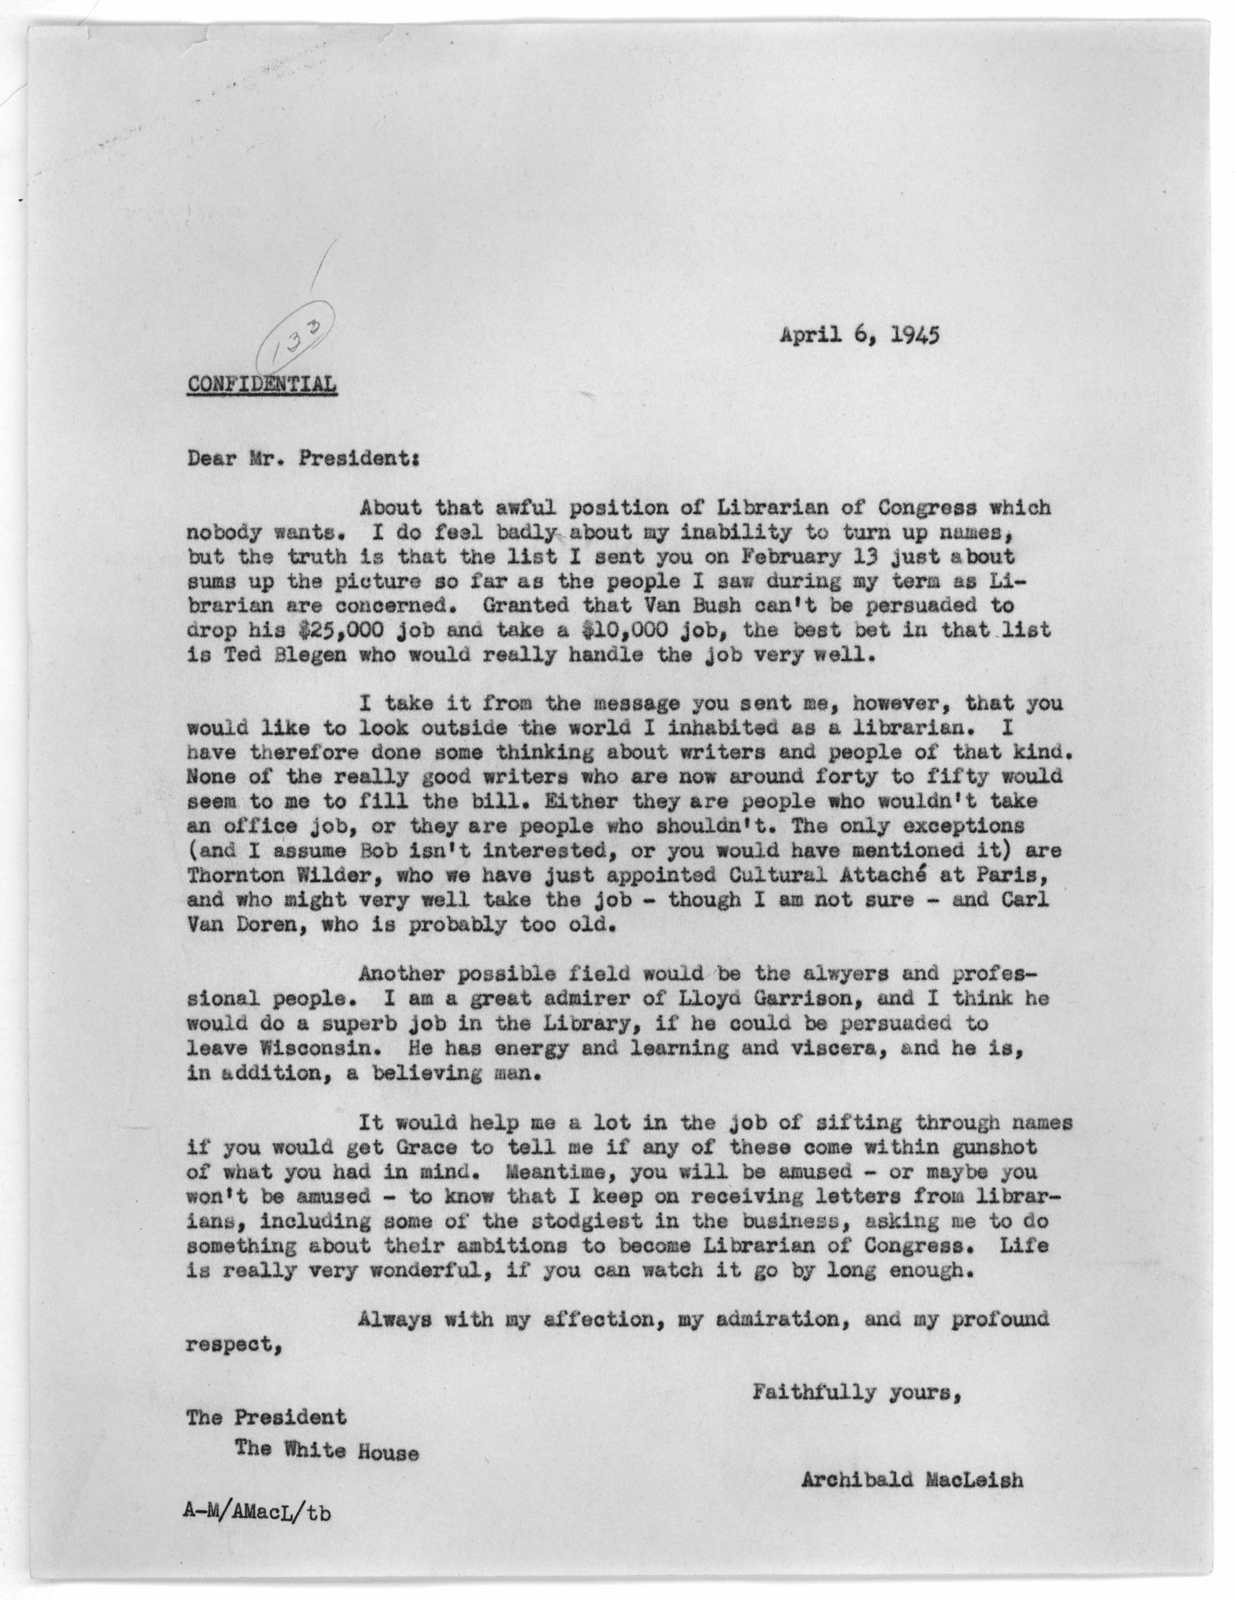 Letter from Archibald MacLeish to Franklin D. Roosevelt, April 6, 1945